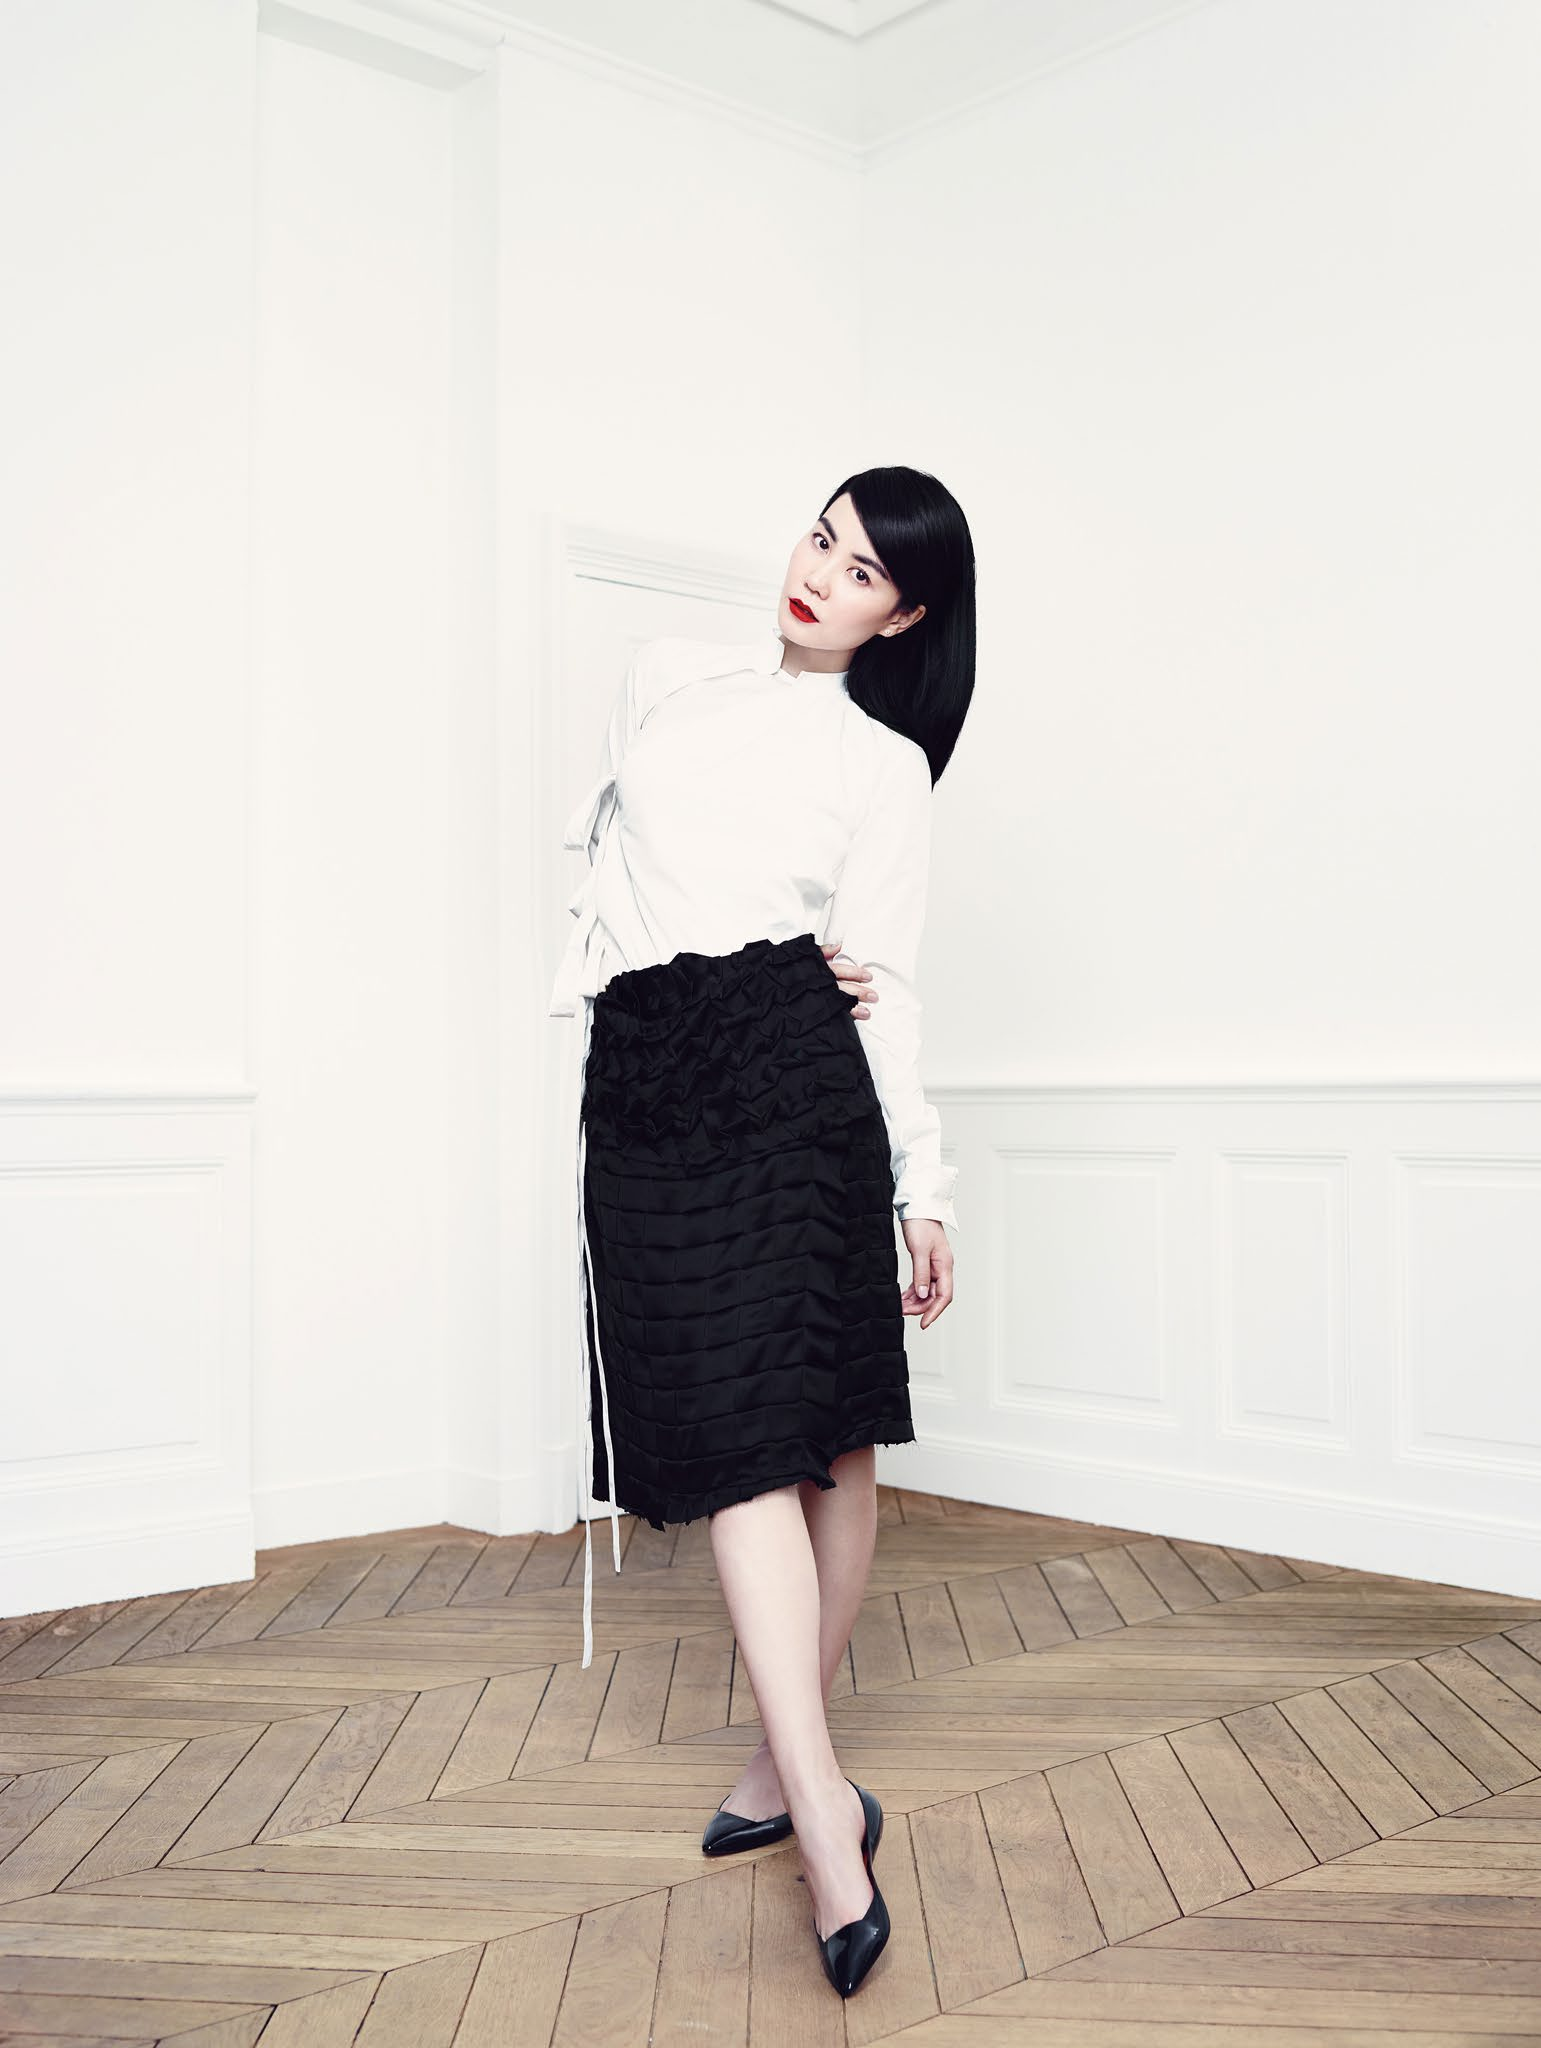 faye-wong-by-emma-summerton-for-vogue-china-june-2014-6